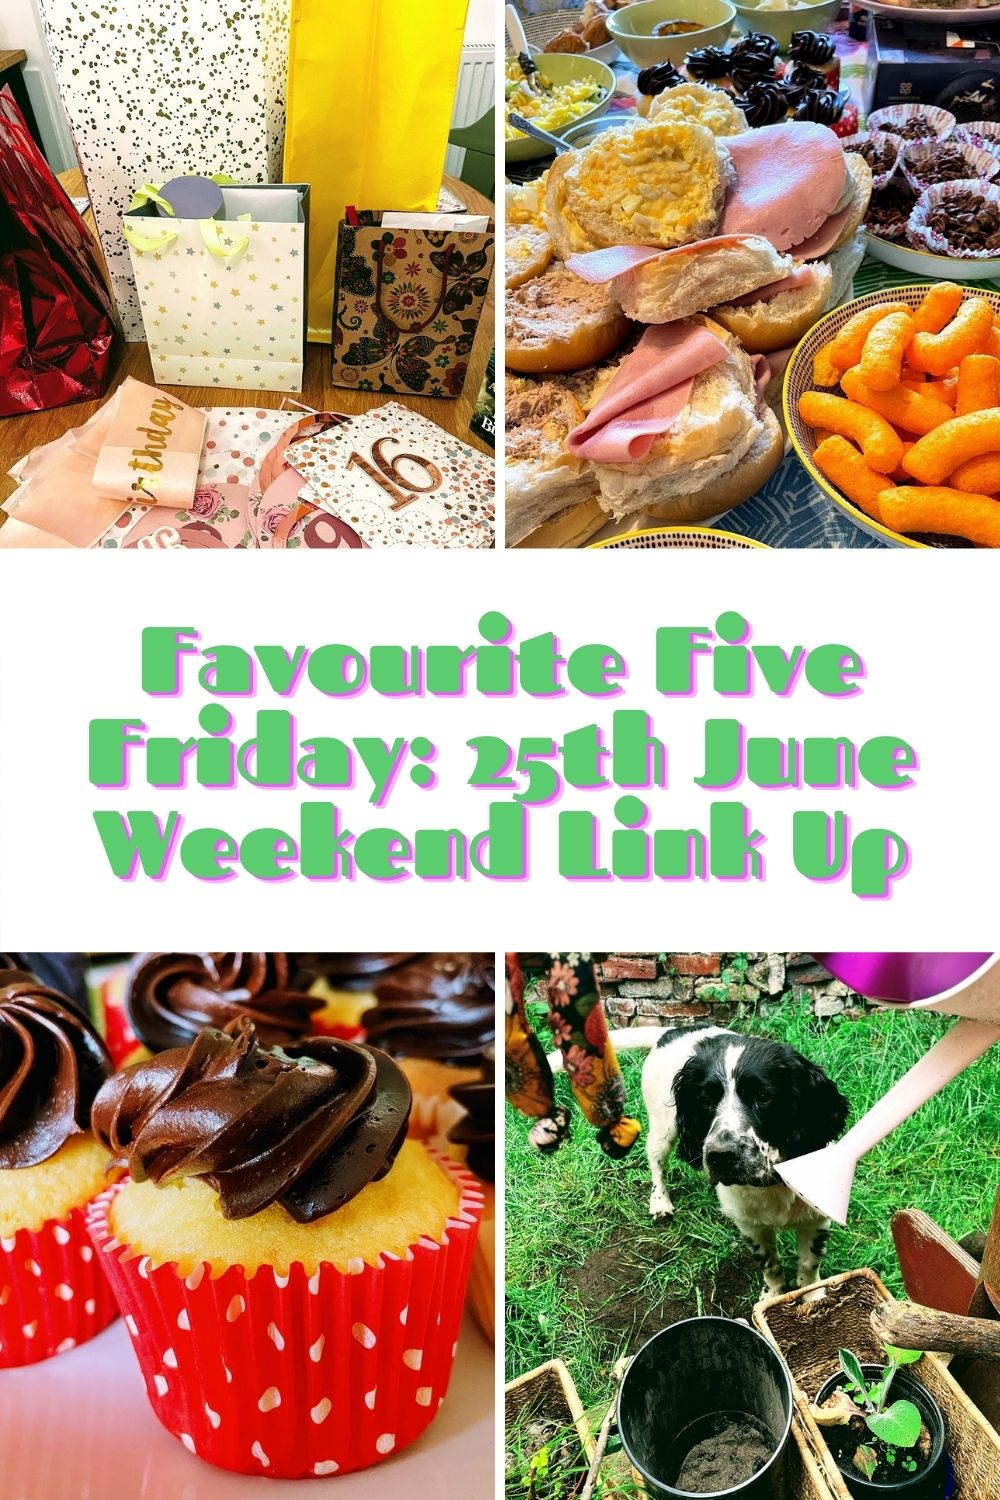 Favourite Five Friday: 25th June Weekend Link Up